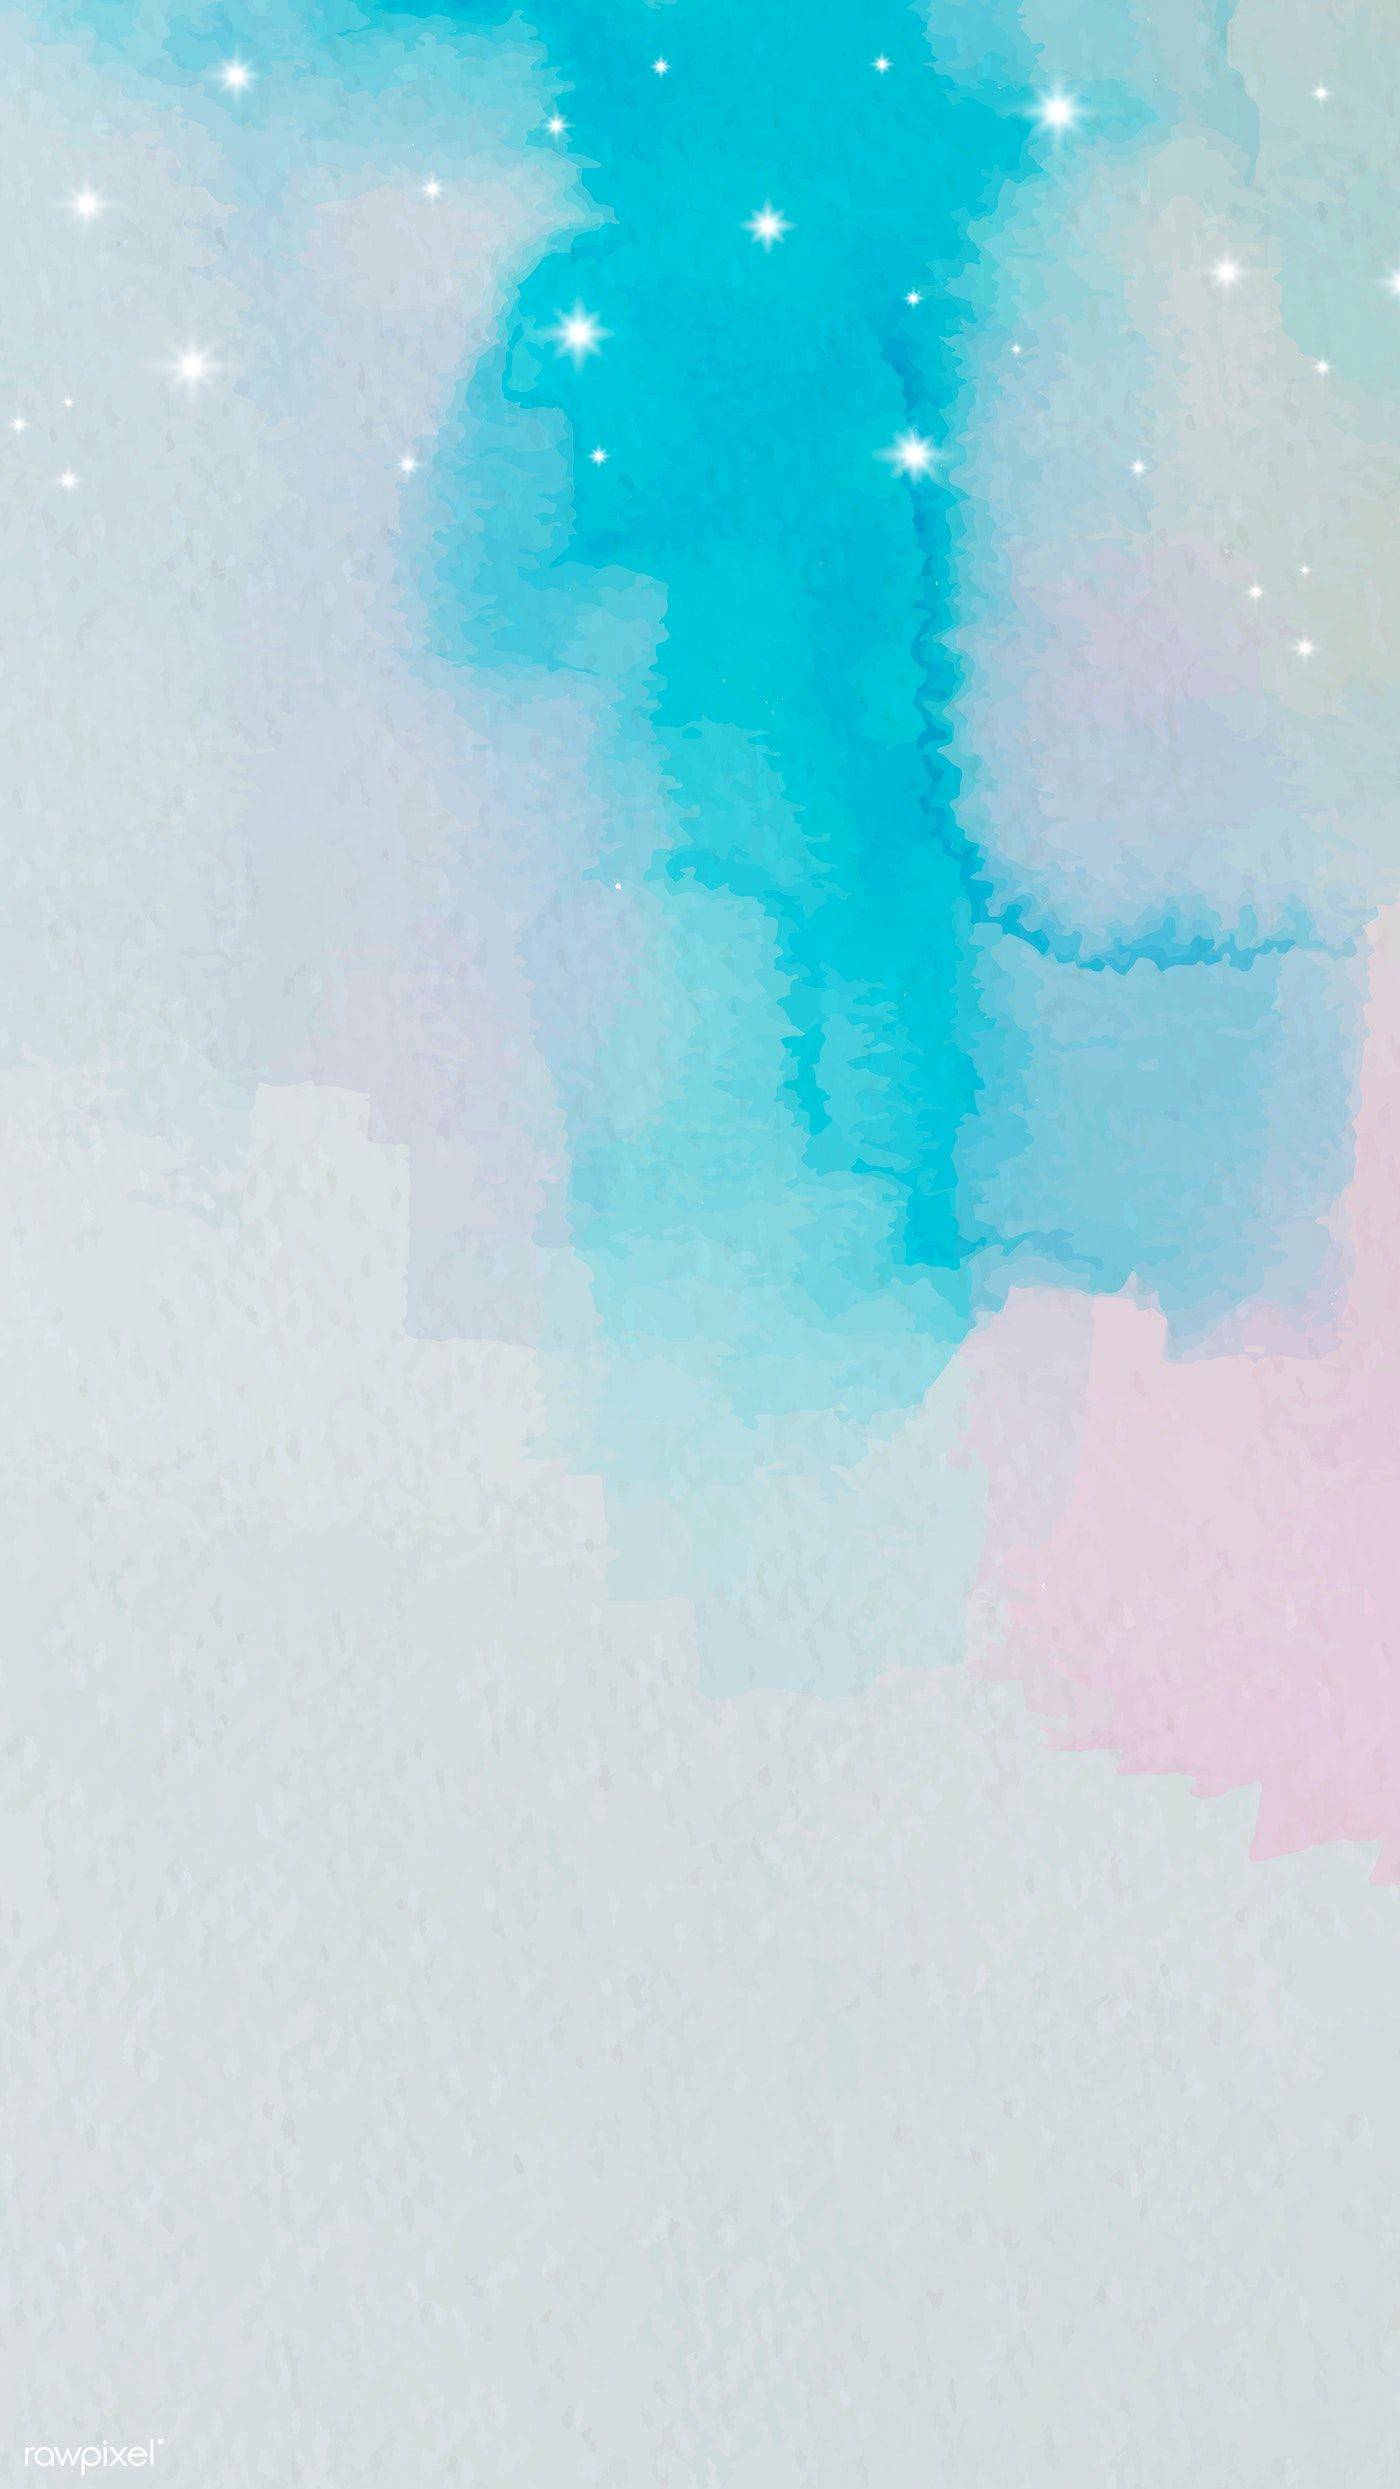 Download premium vector of Blue and pink watercolor